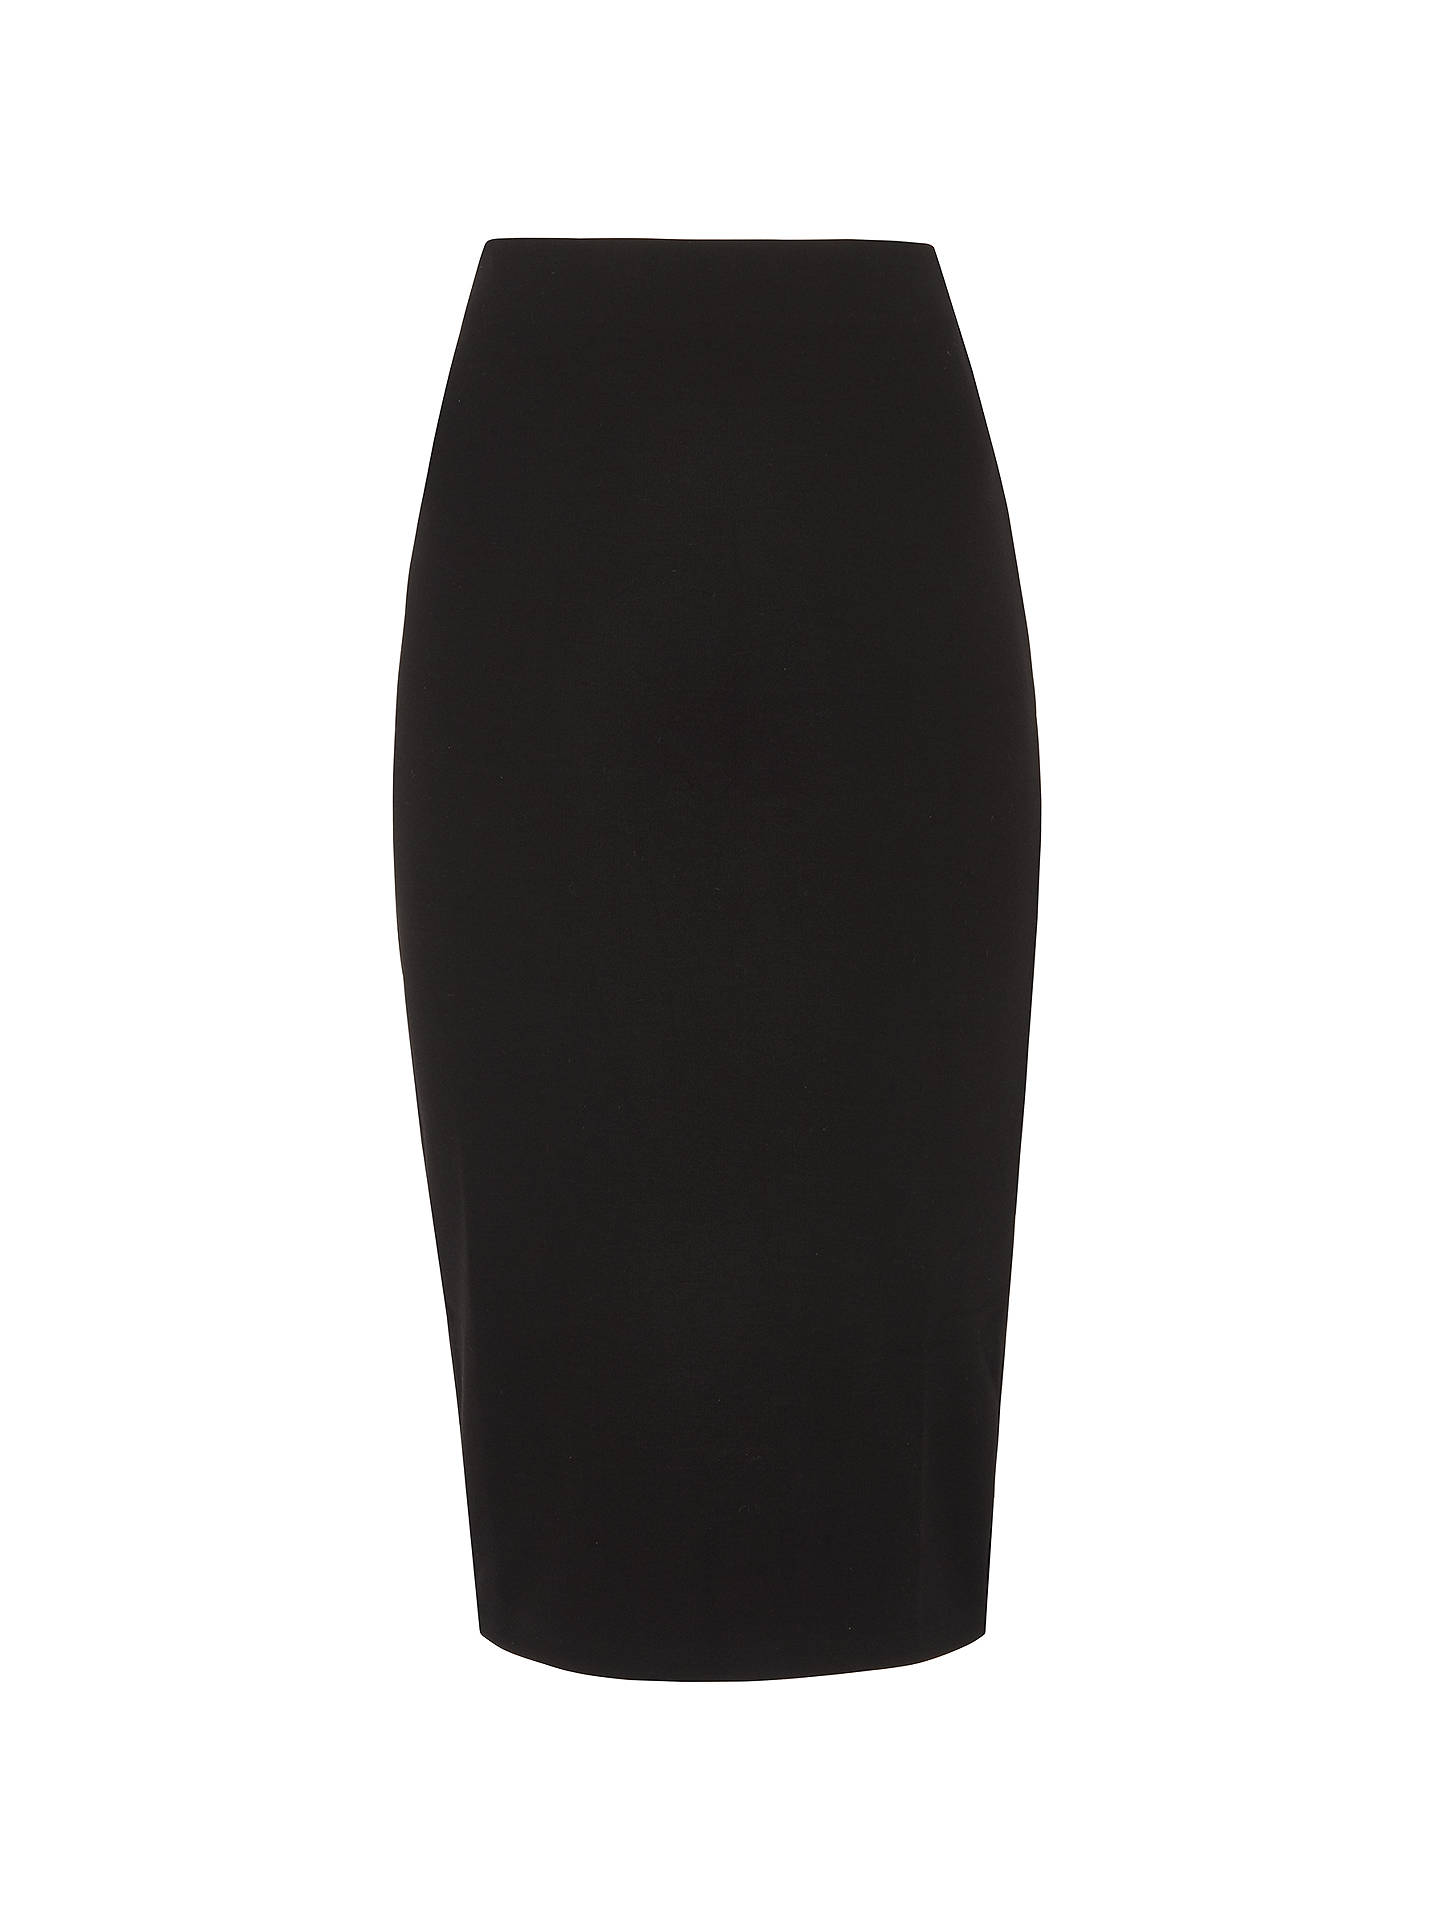 Molti Prescrivere capolavoro  Whistles Jersey Tube Skirt, Black at John Lewis & Partners